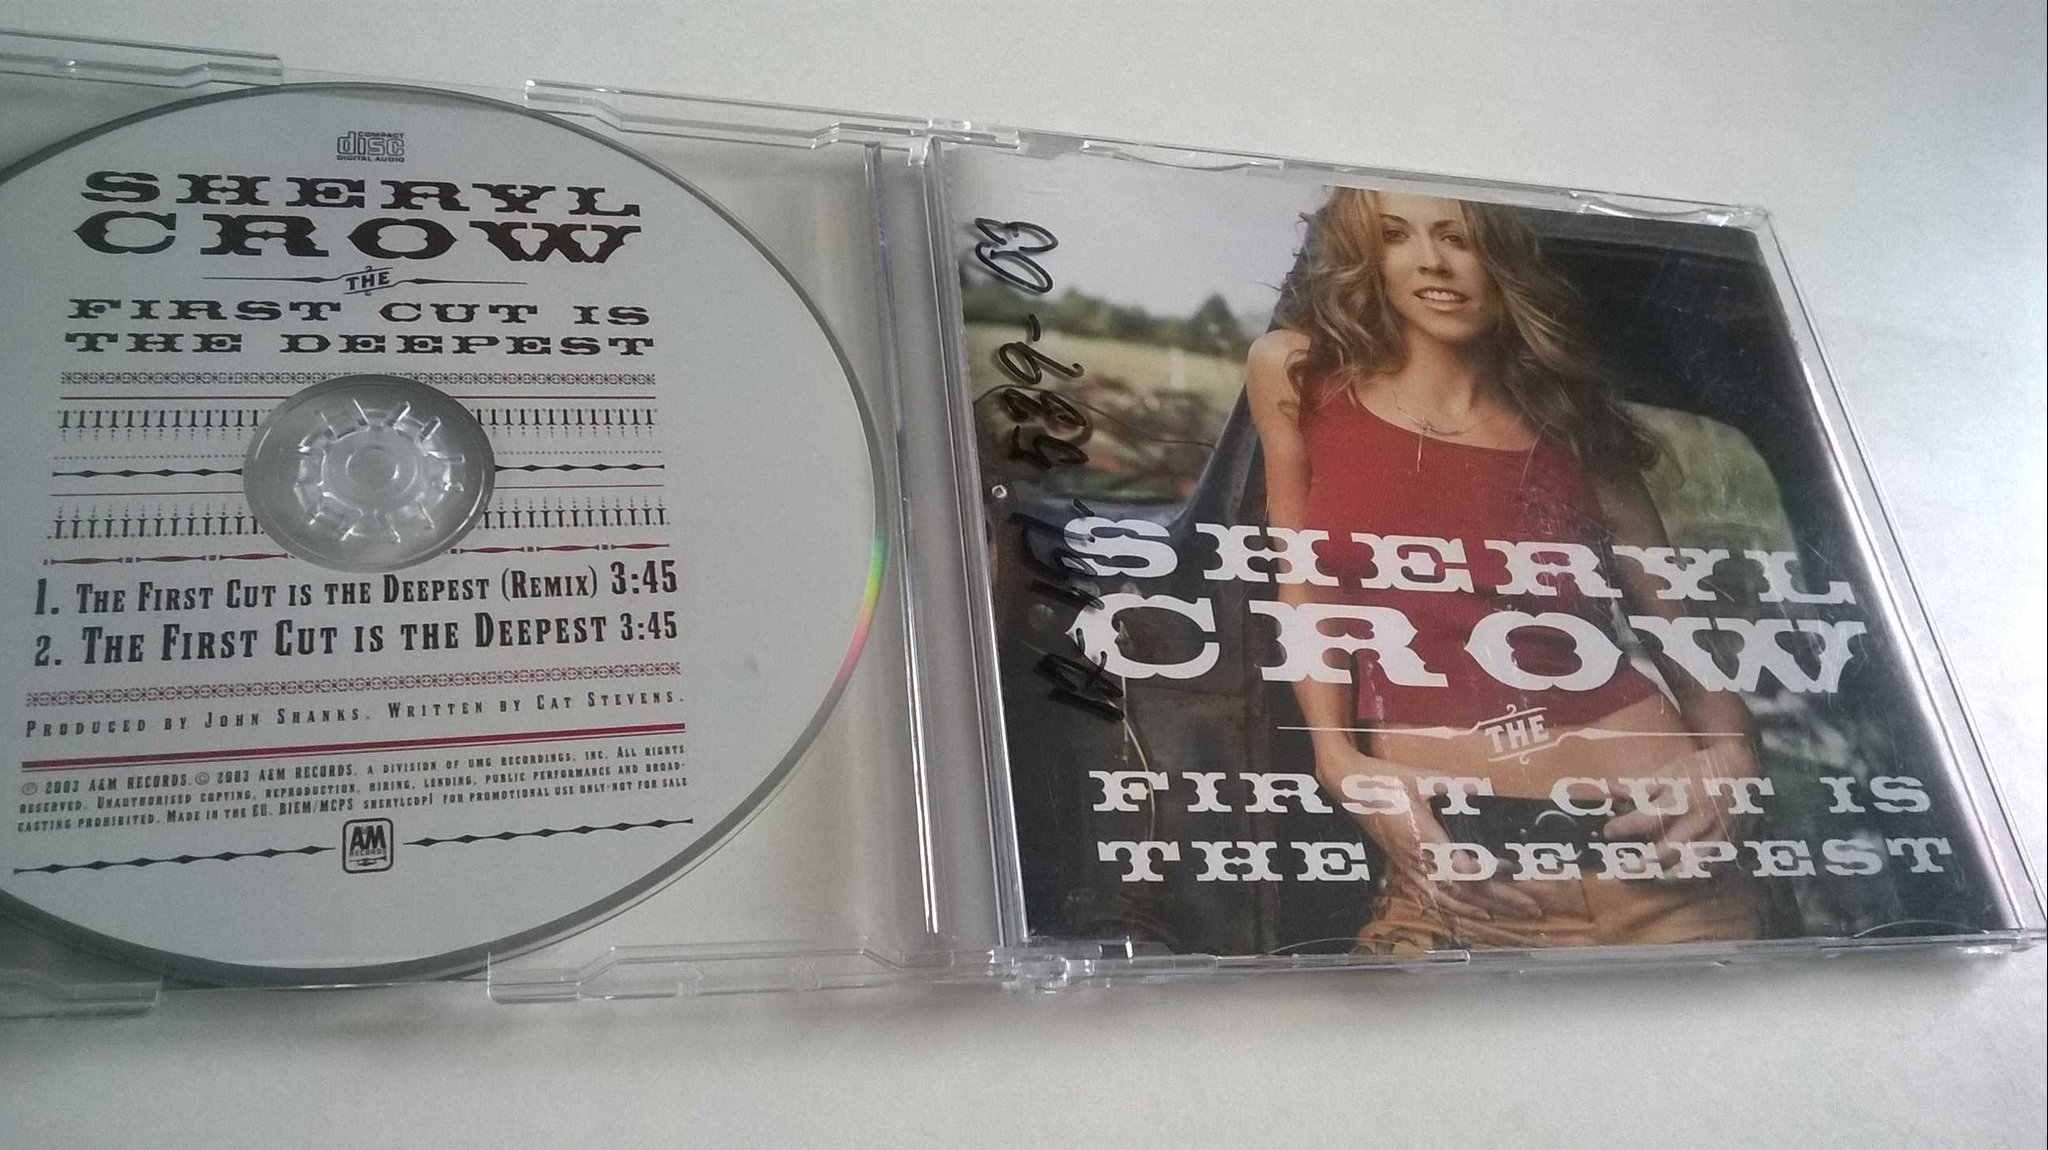 Sheryl Crow - First Cut Is The Deepest, CD, Single